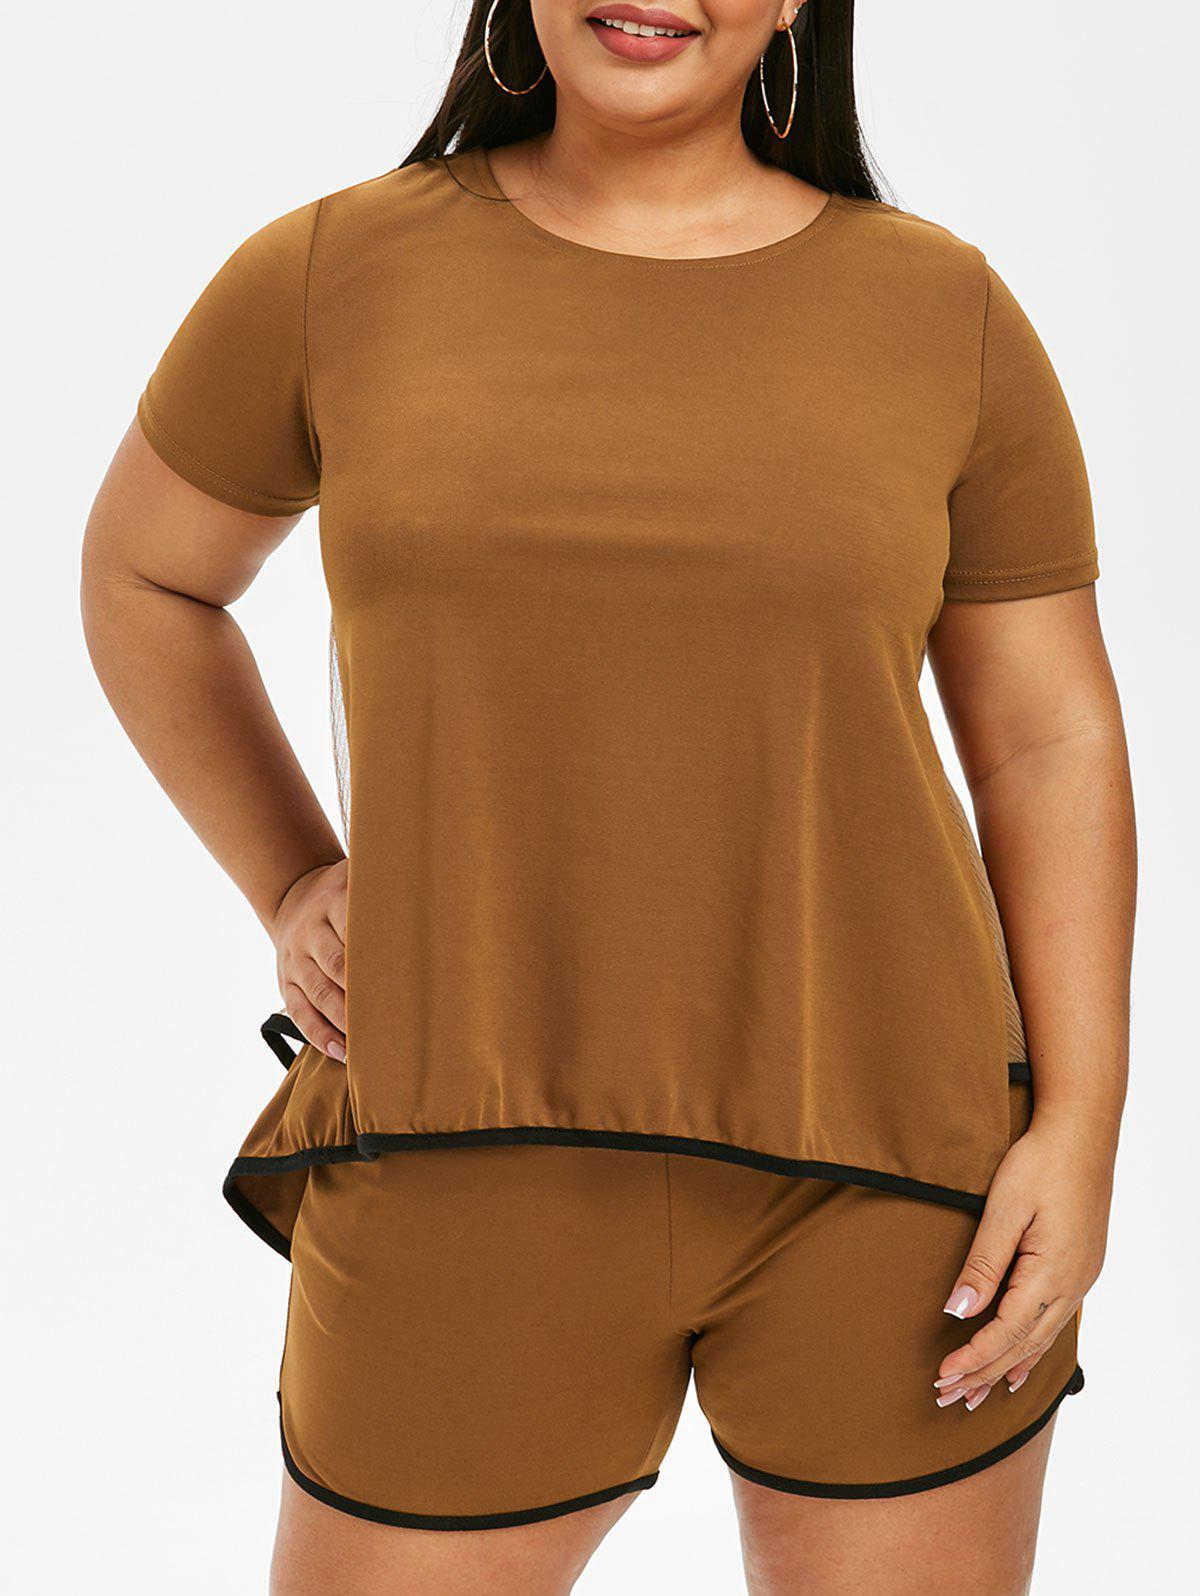 41 Off 2020 Plus Size High Low Layered T Shirt With Shorts In Brown Dresslily